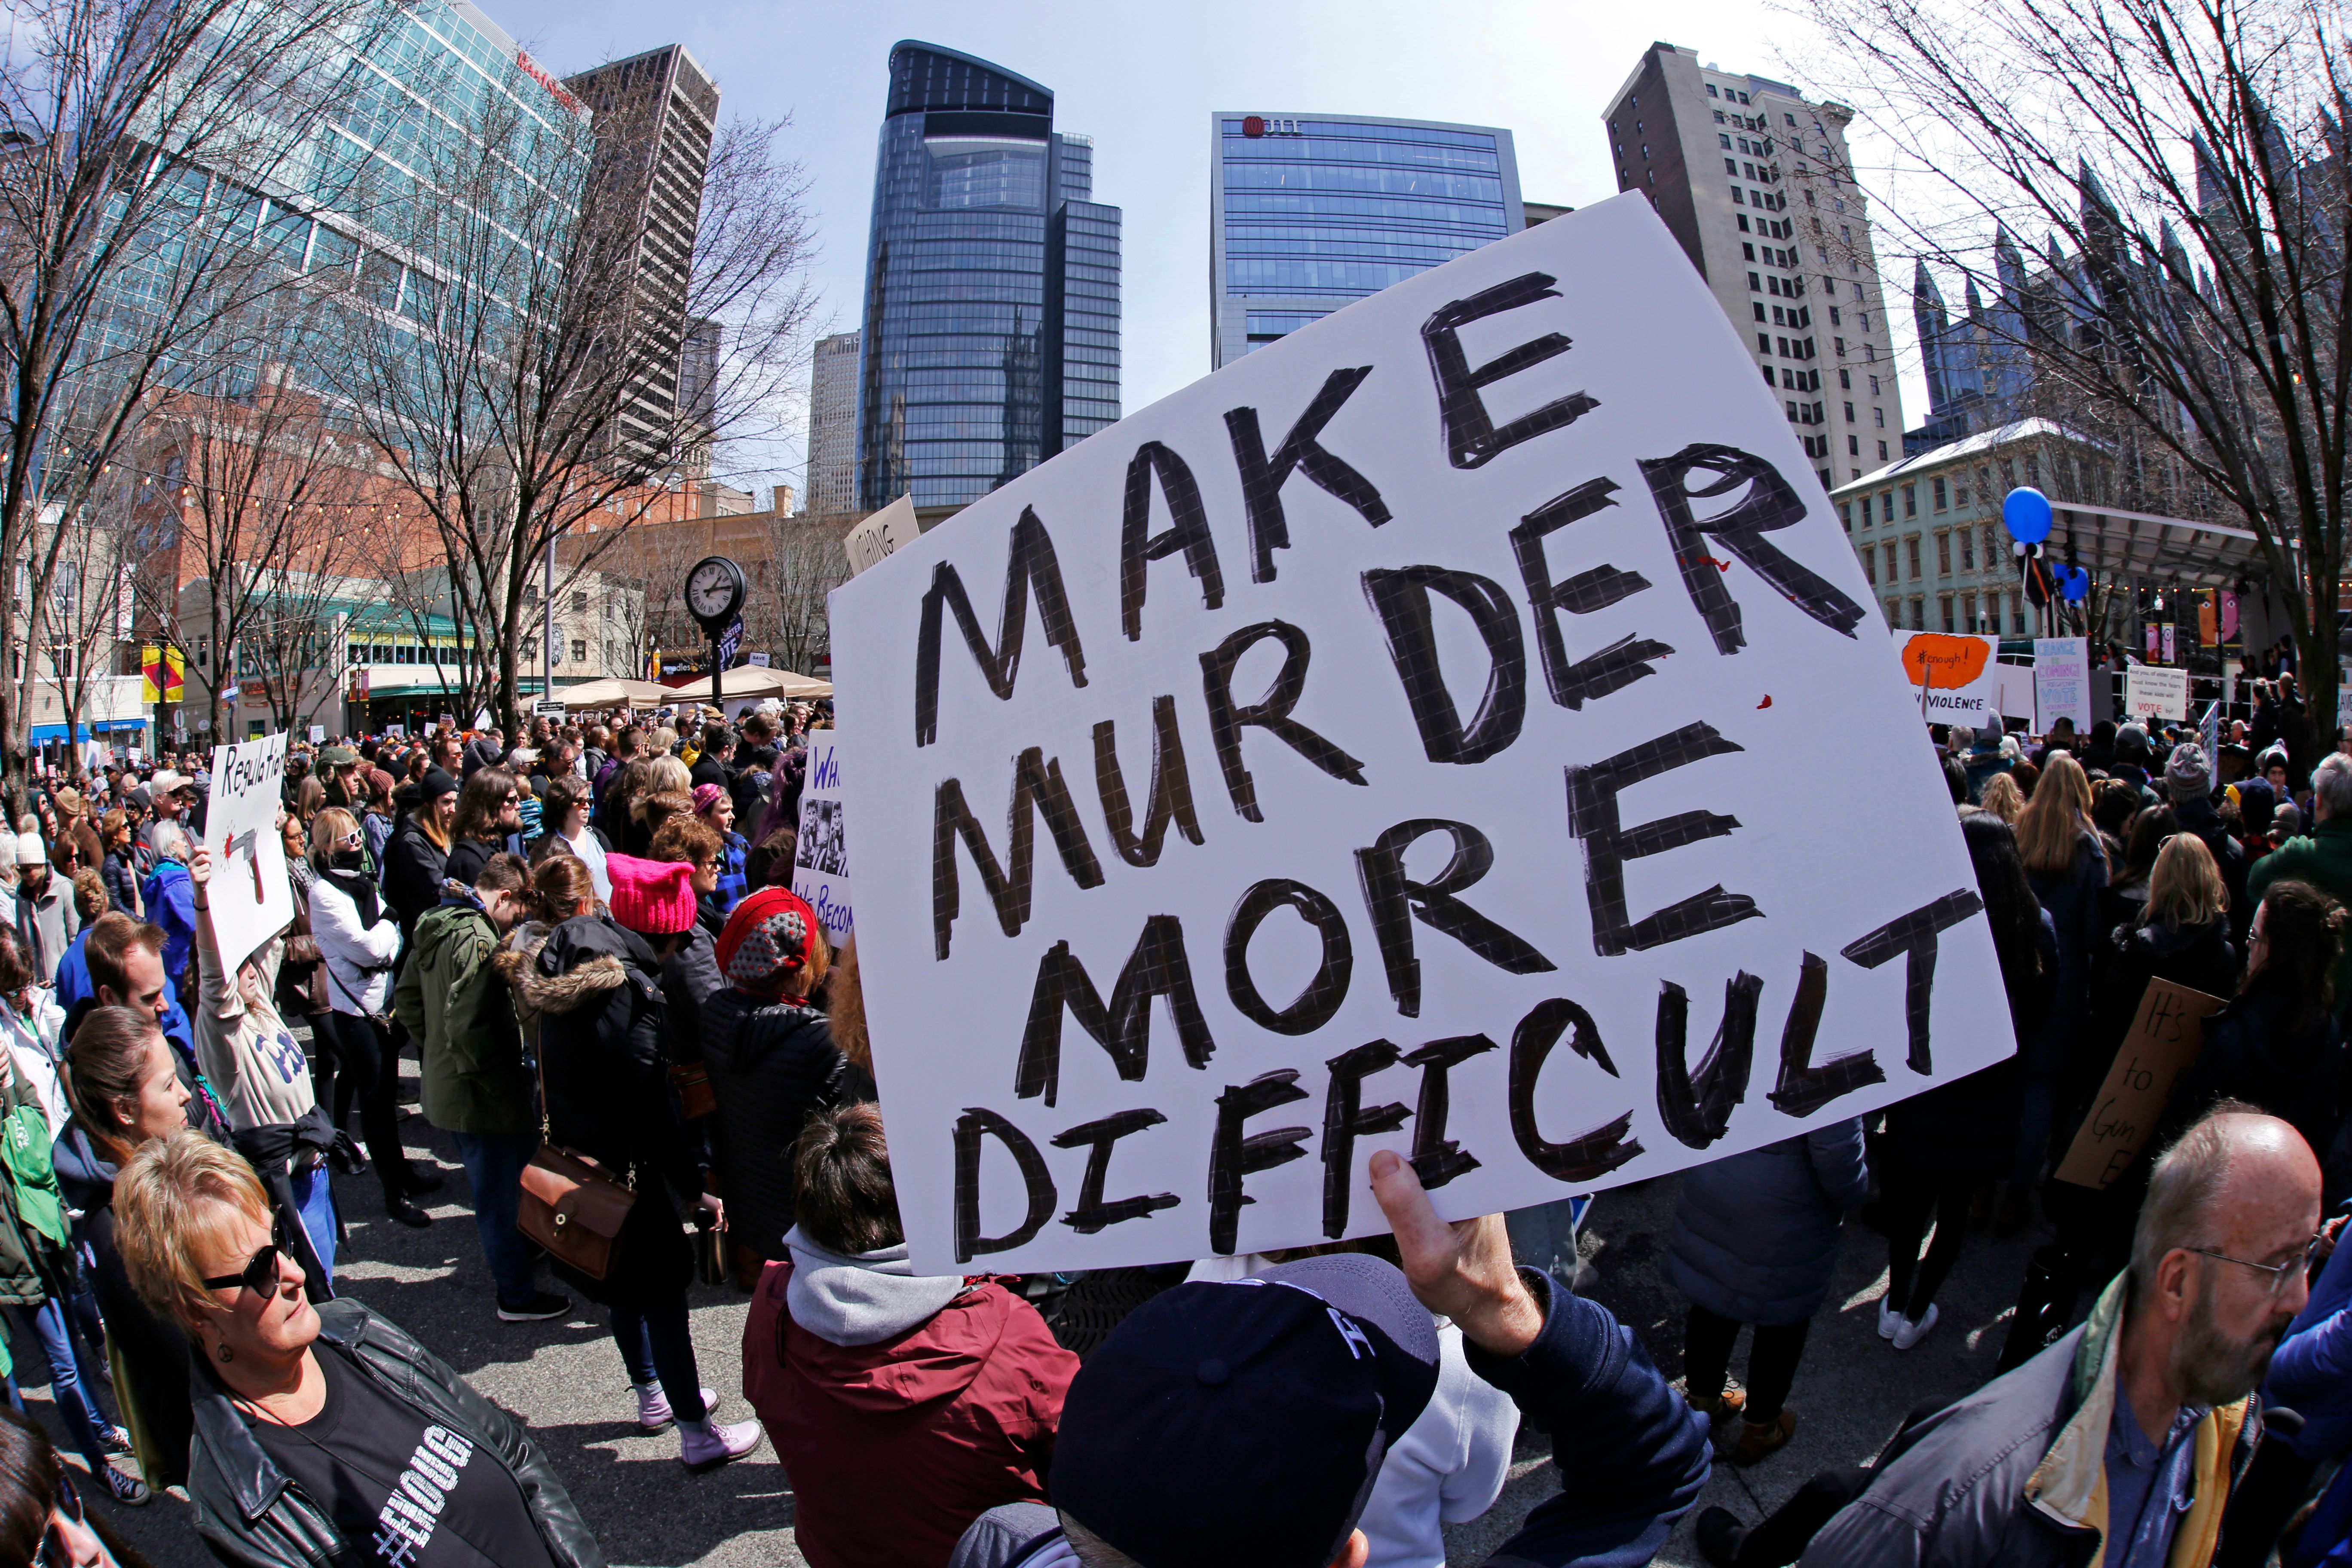 People hold signs during a gun control rally in Market Square in downtown Pittsburgh in March 2018.